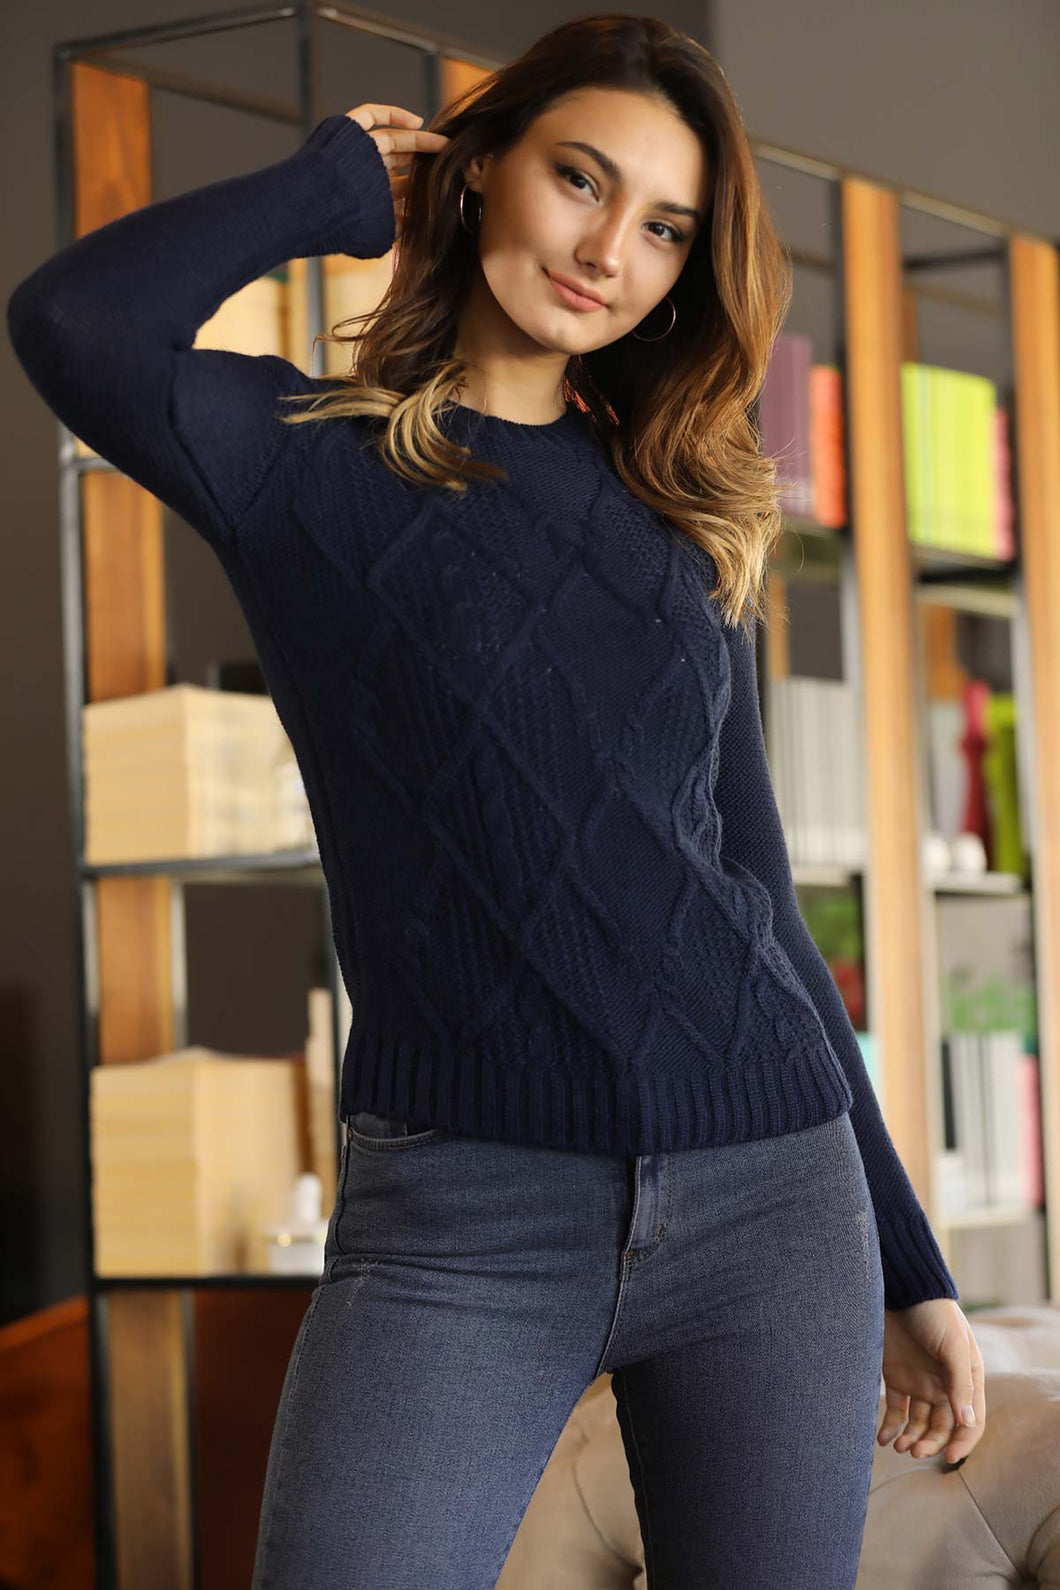 Women's Navy Blue Tricot Sweater